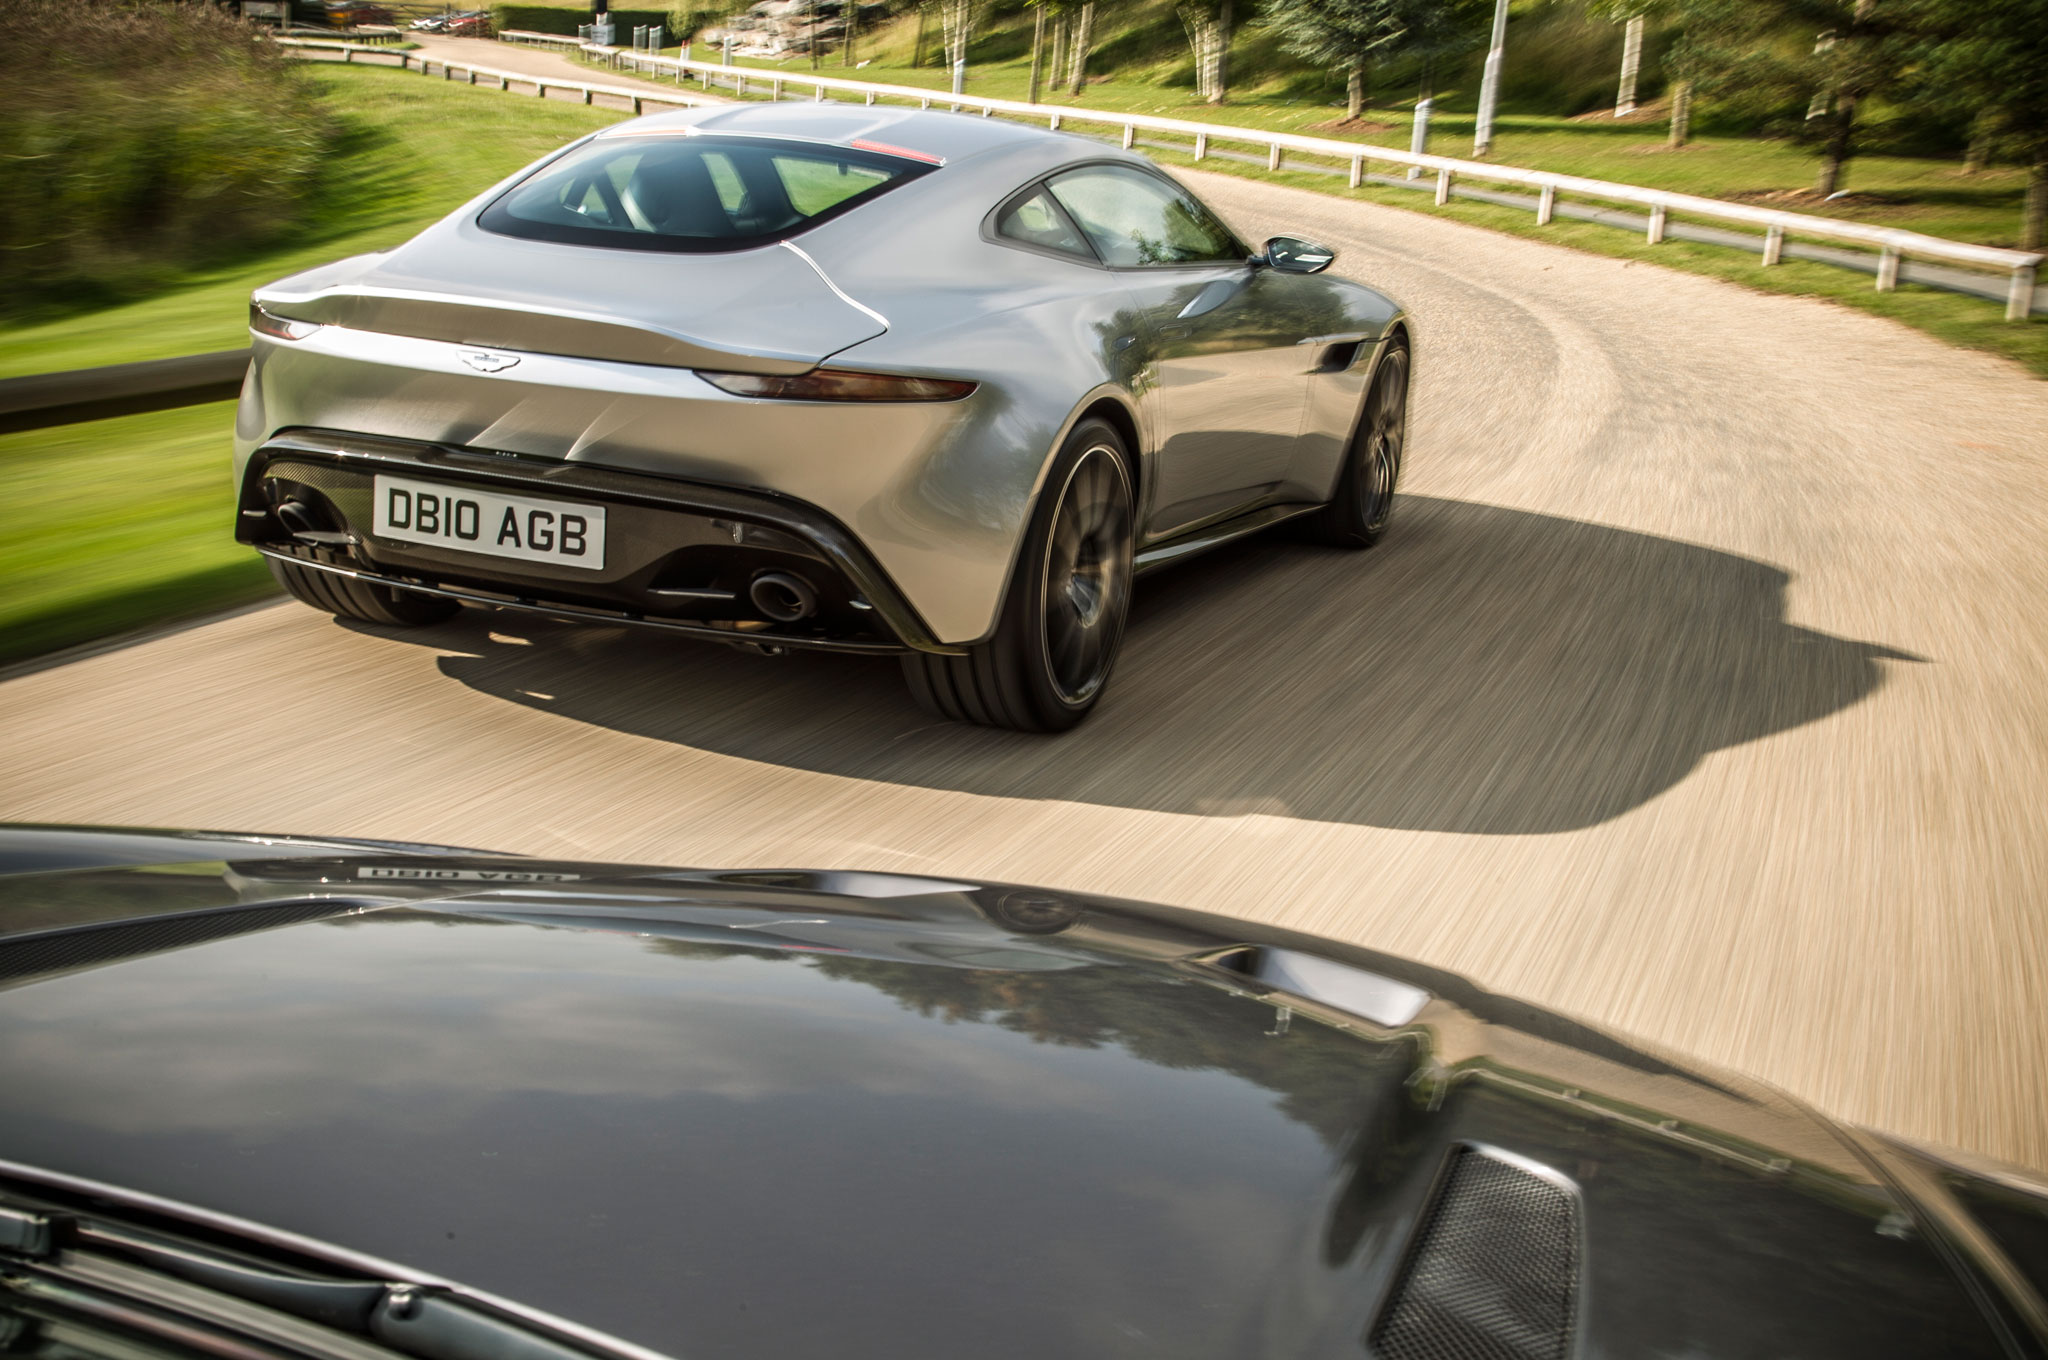 """Aston Martin DB10 from """"Spectre"""" Sells for $3.5 Million"""